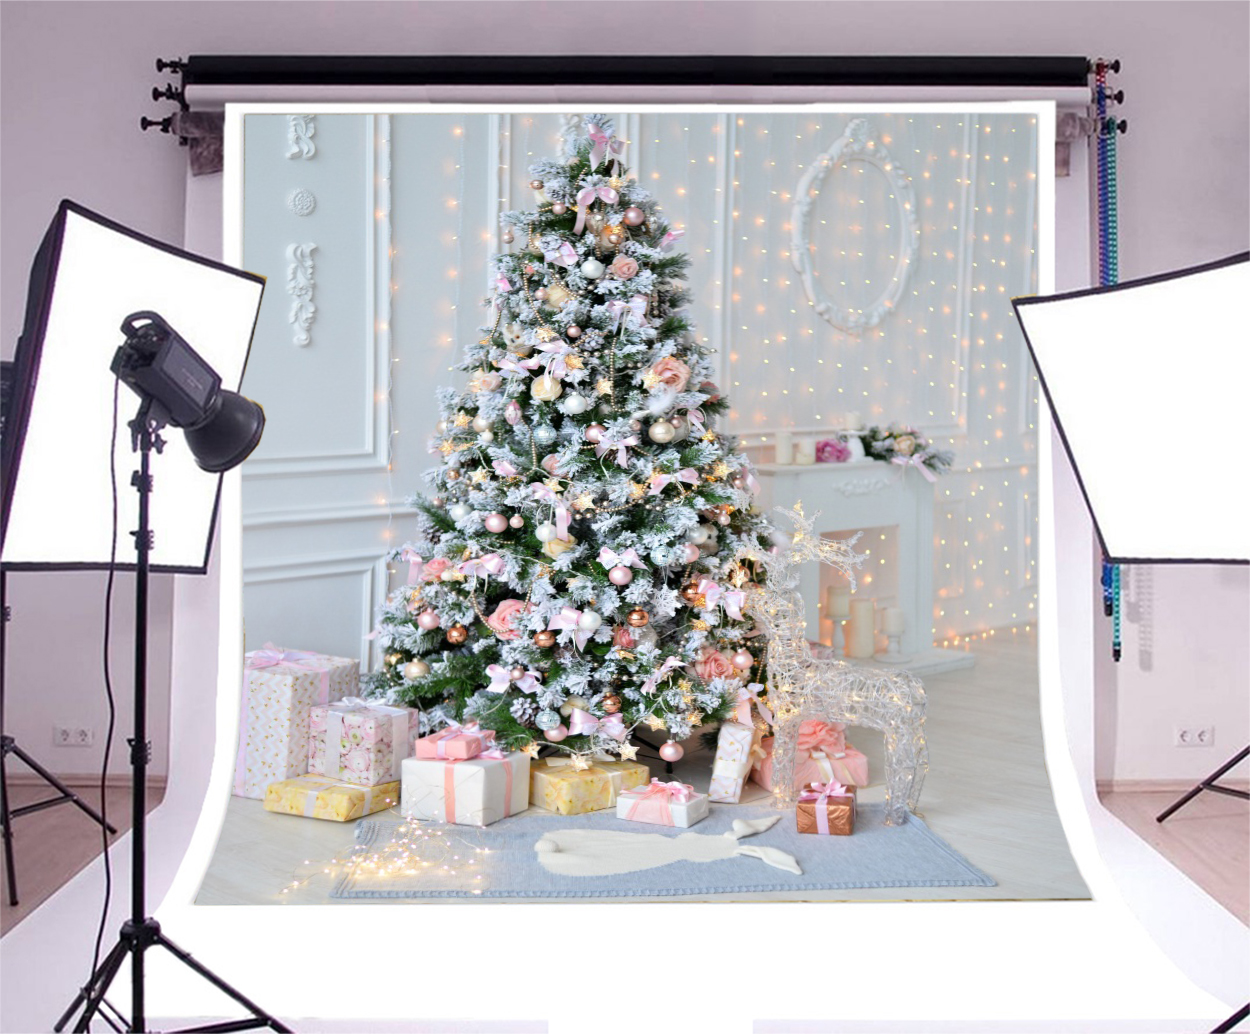 Indoor Sweet Christmas Tree Gifts 10x10\' Photography Backgrounds ...